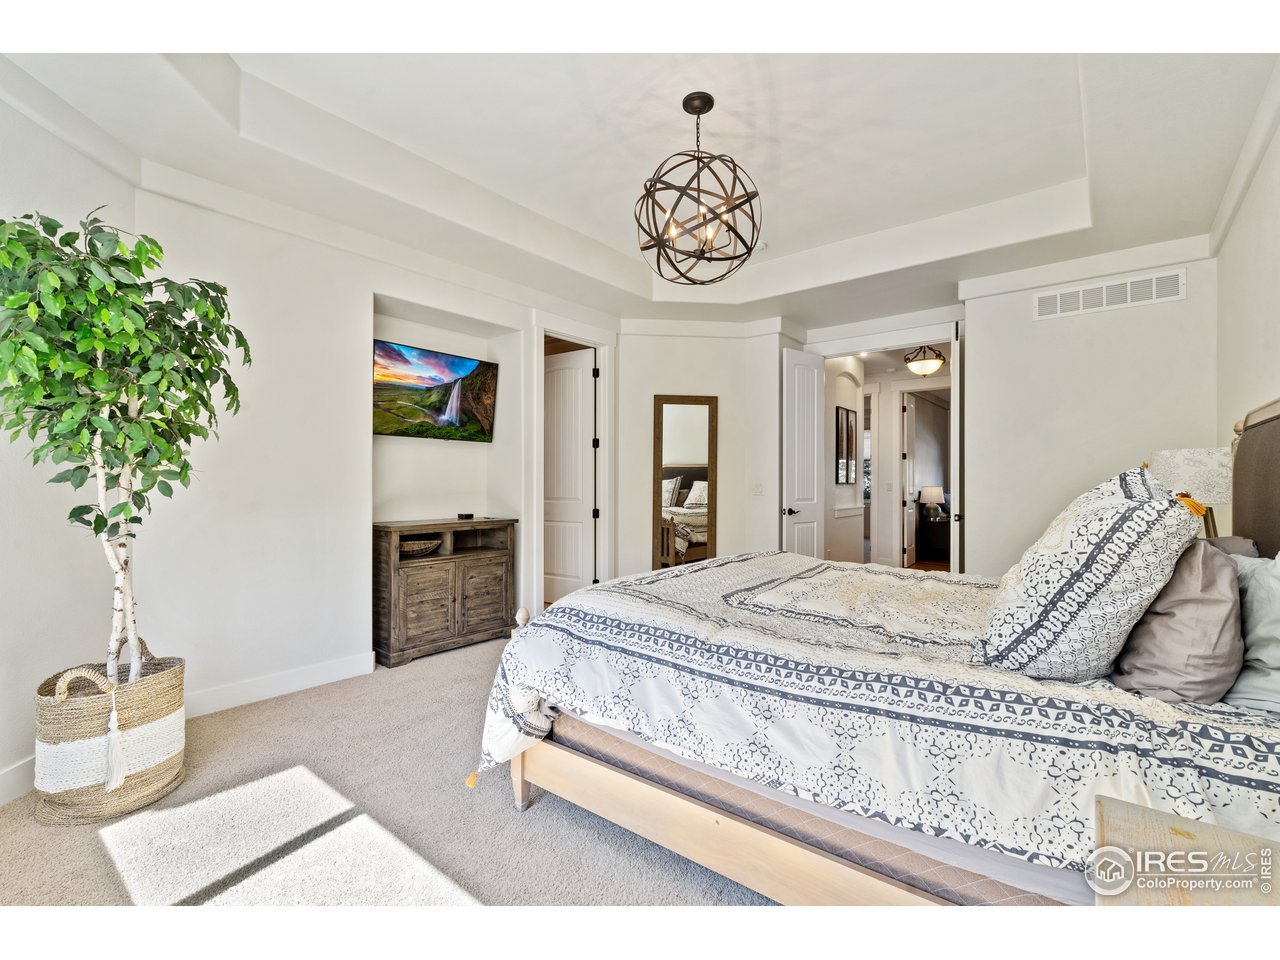 Private Oasis in this Master Bedroom